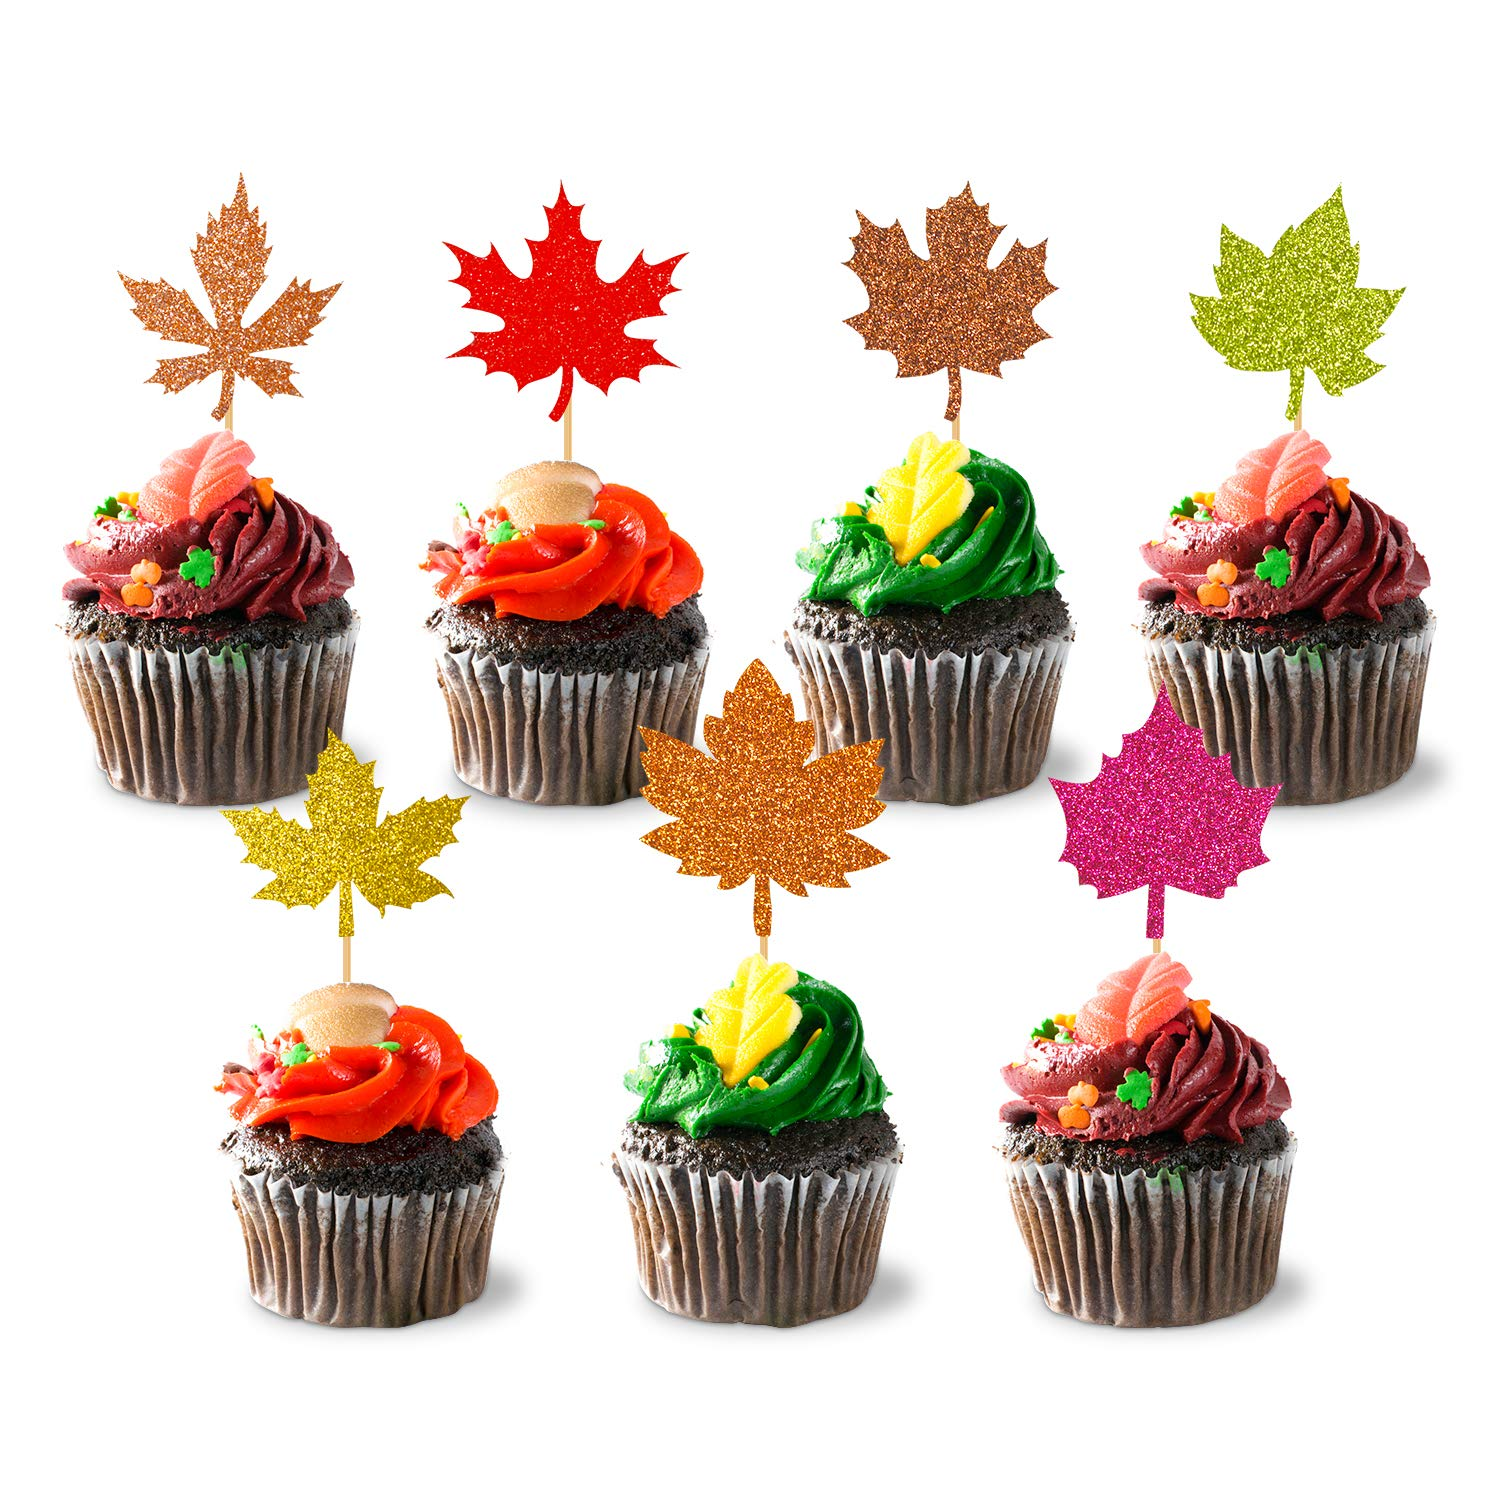 35PCS Glitter Maple Leaf Thanksgiving Holiday Cupcake toppers Fall Leaves Food Picks Pie Toppers for Fall Autumn Harvest Party Cake Decorations Supplies